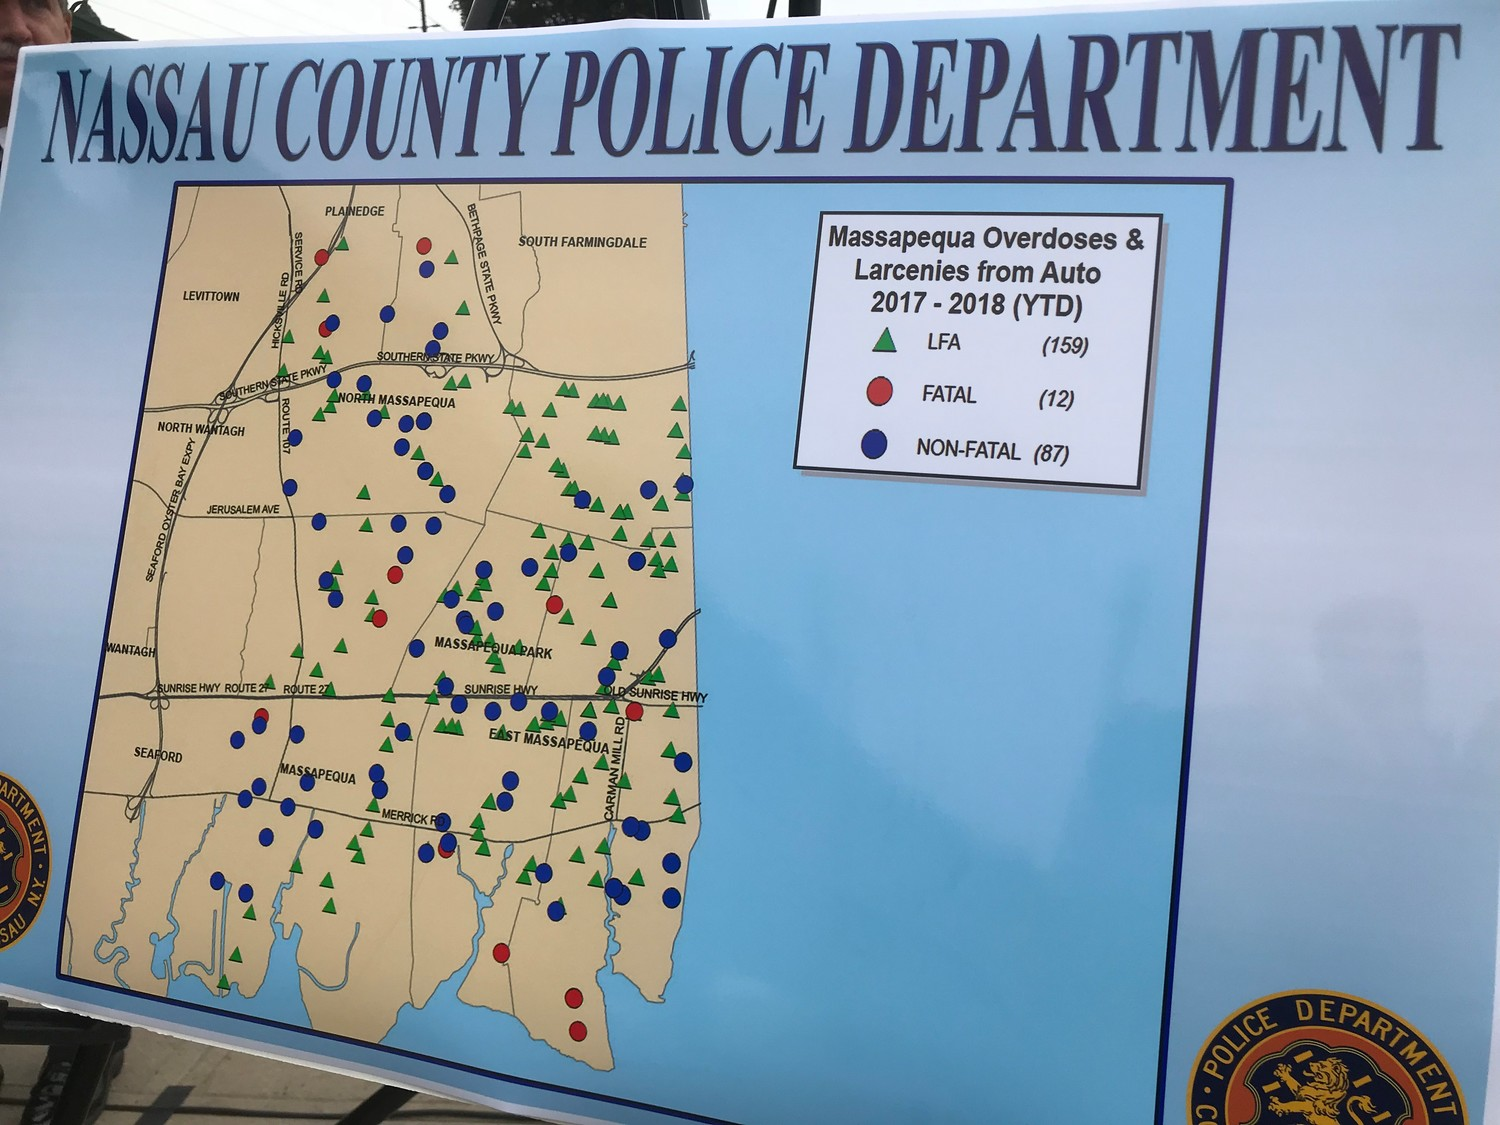 This map of Massapequa shows the information that OD Maps is giving the NCPD. The NCPD layer crimes on top of overdoses, and use to find correlations between crime and overdoses along with areas with a large number of overdose incidents.